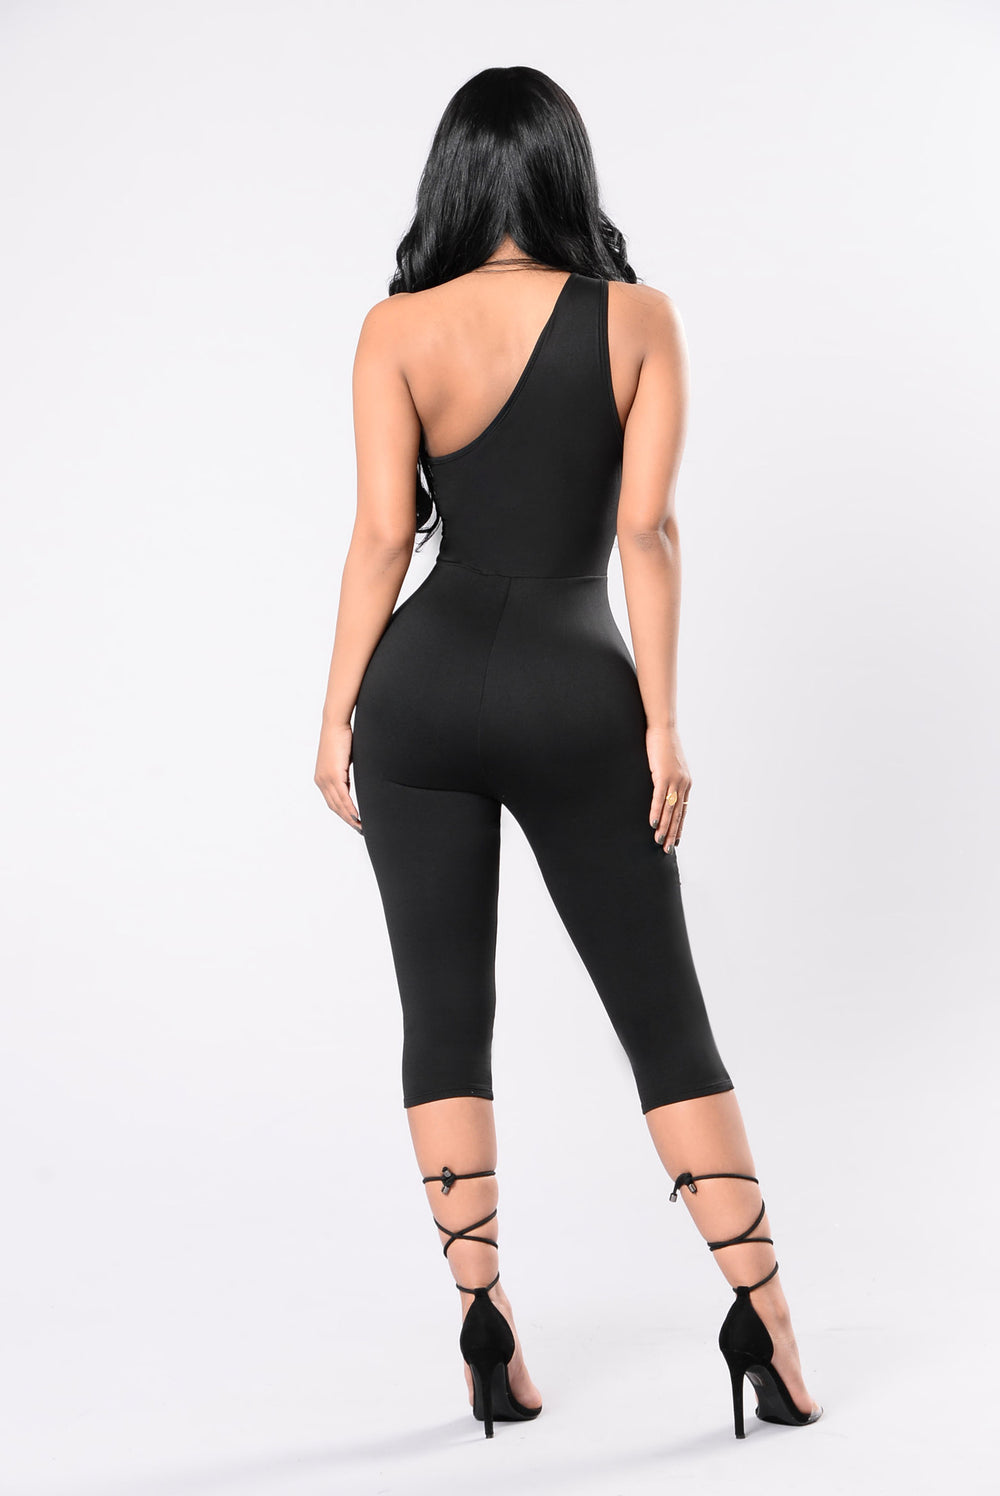 Thrill Of The Night Jumpsuit - Black